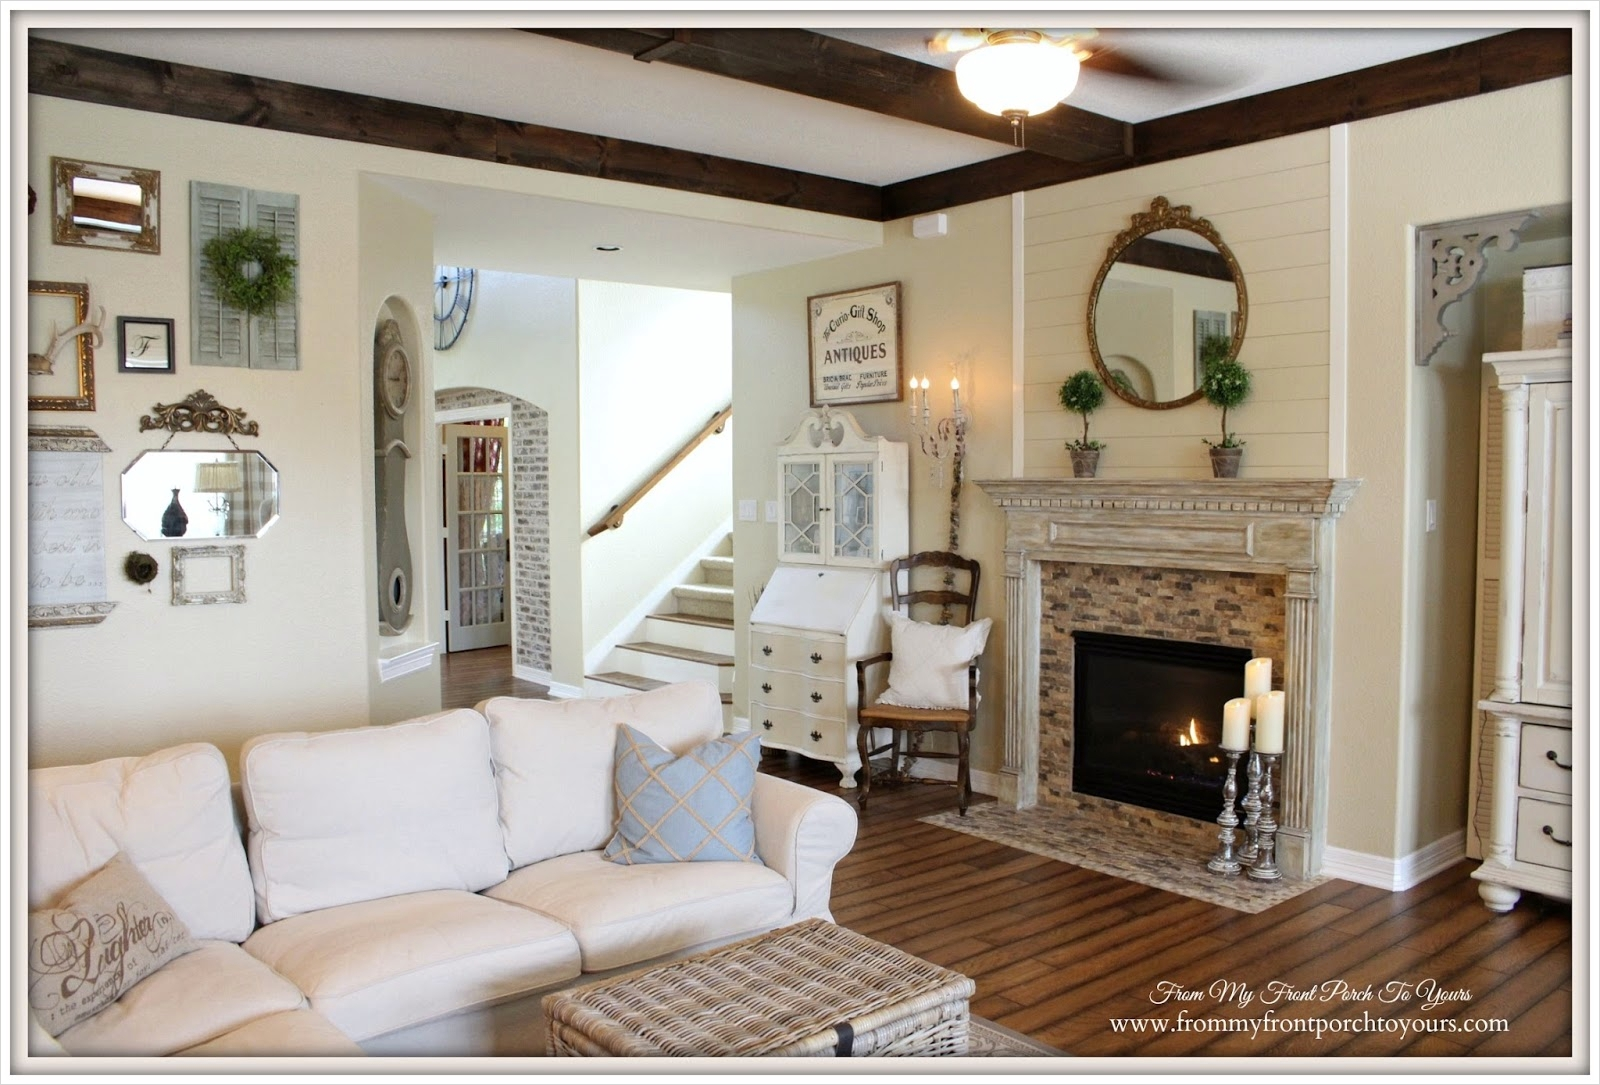 42 Cozy Country Farmhouse Living Room 22 From My Front Porch to Yours Farmhouse Living Room with Ektorp sofa 2